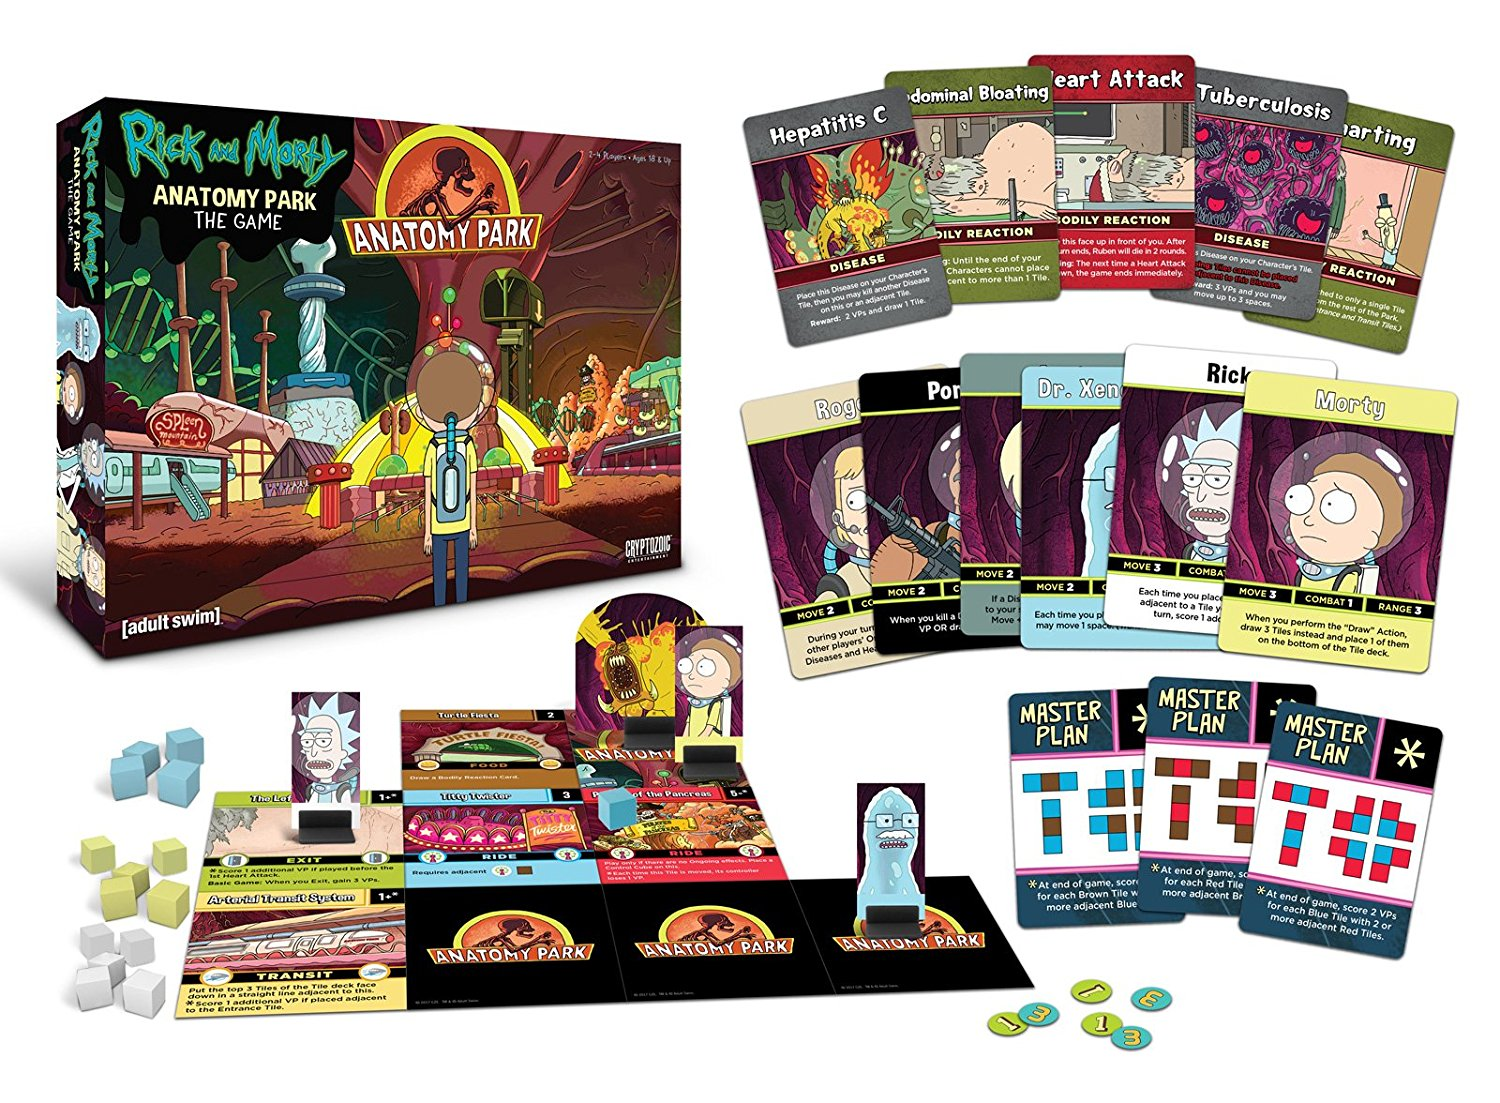 Rick And Morty Anatomy Park Across The Board Game Cafe